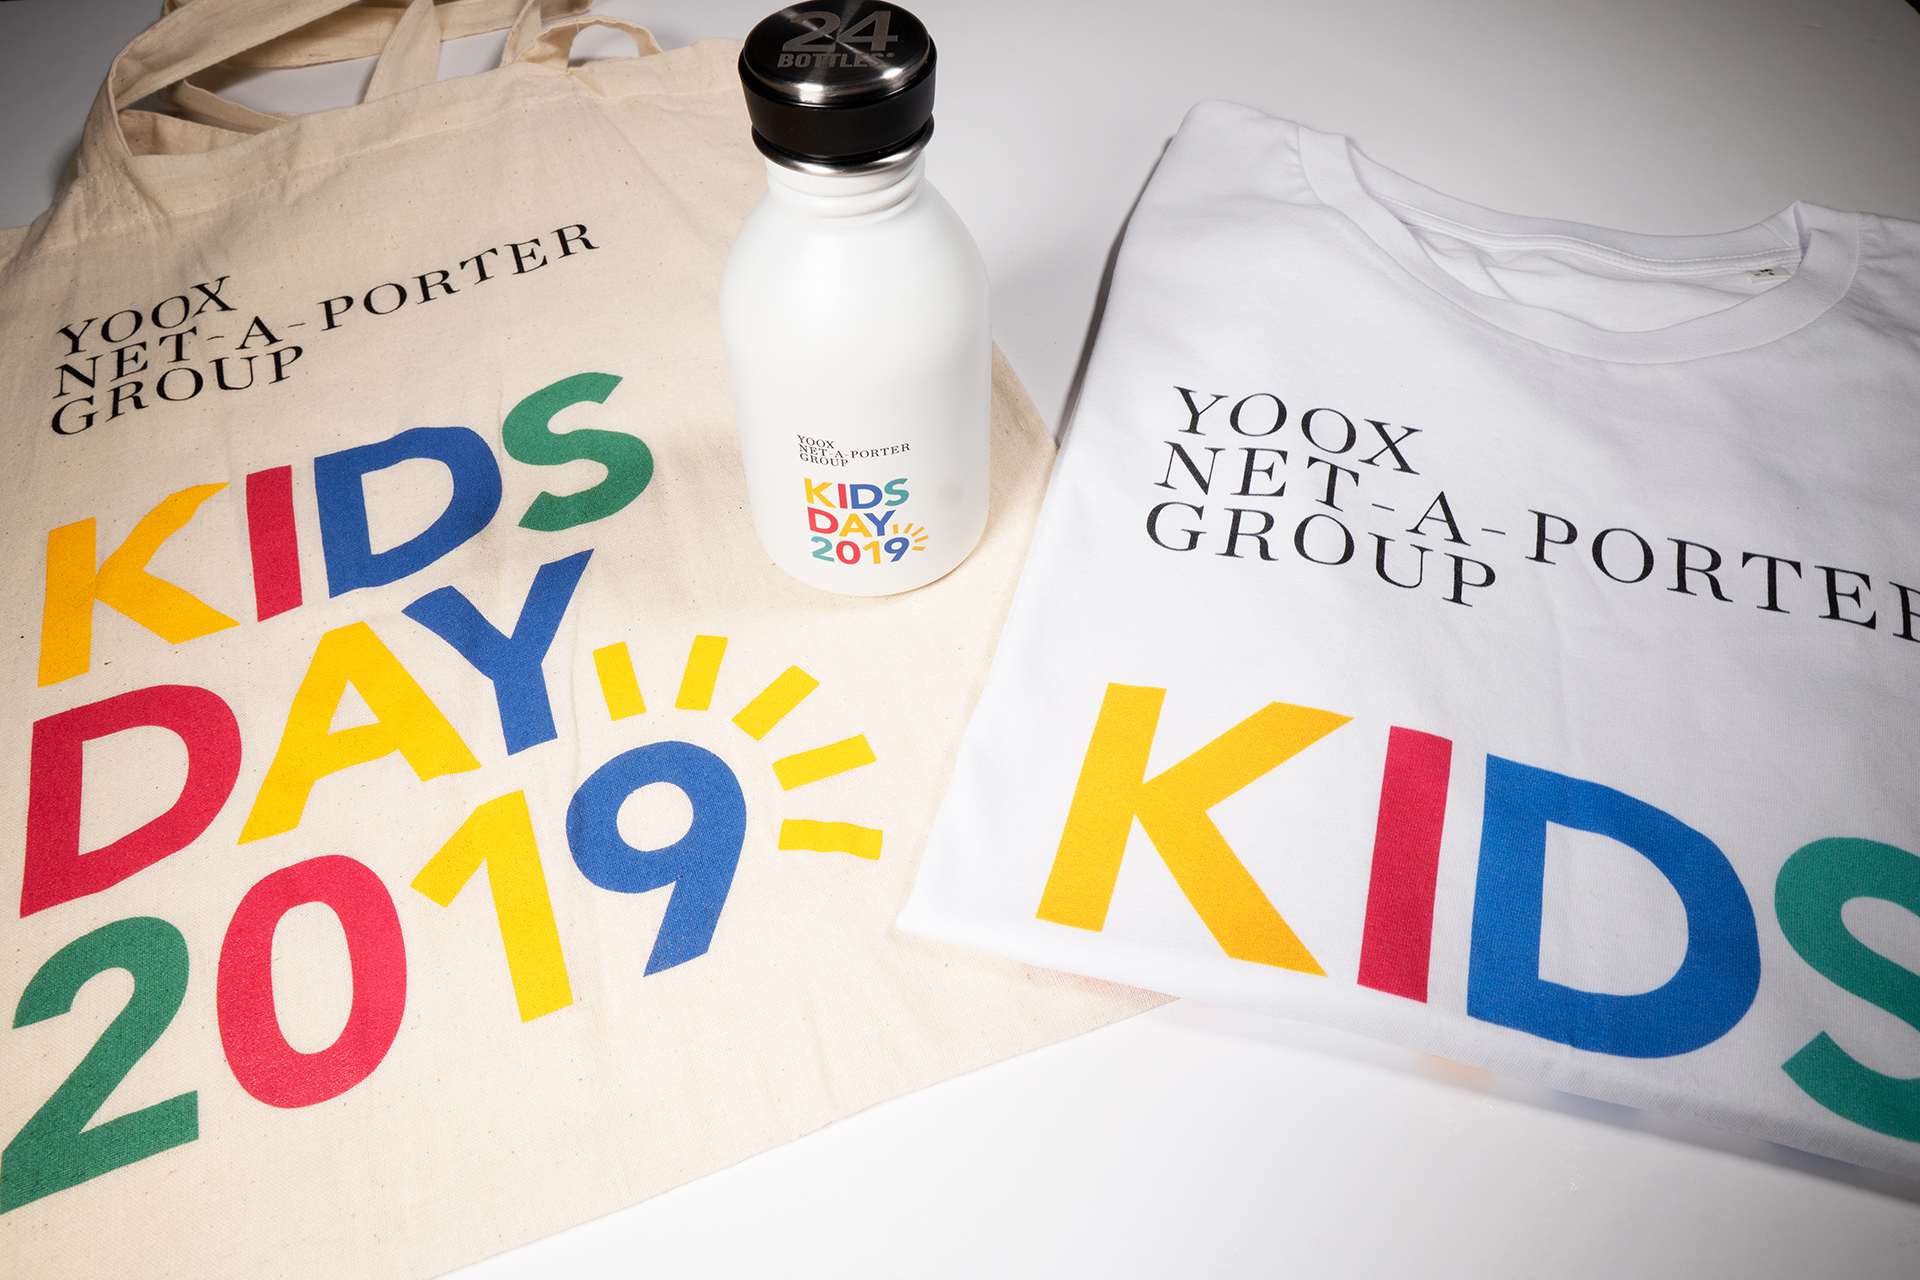 Branded t-shirt and reusable bottle for Kids Day 2019